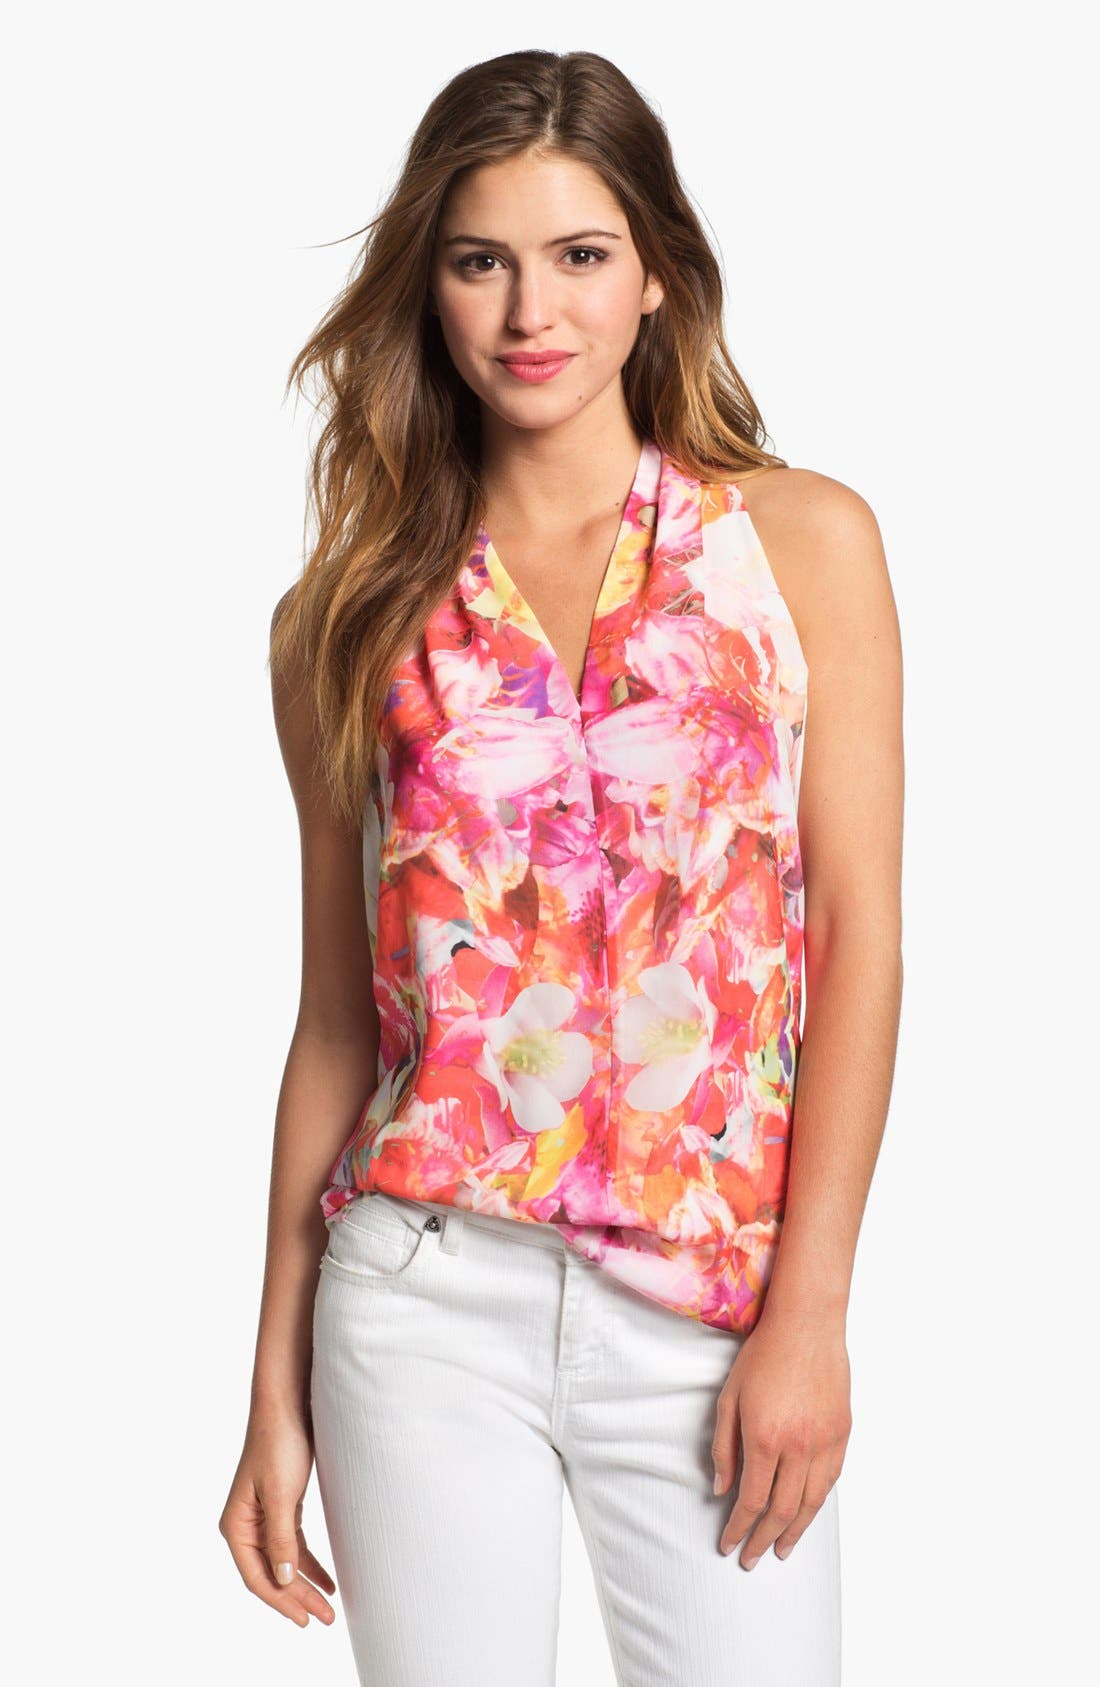 Alternate Image 1 Selected - Vince Camuto 'Corsage Floral' Sleeveless Blouse